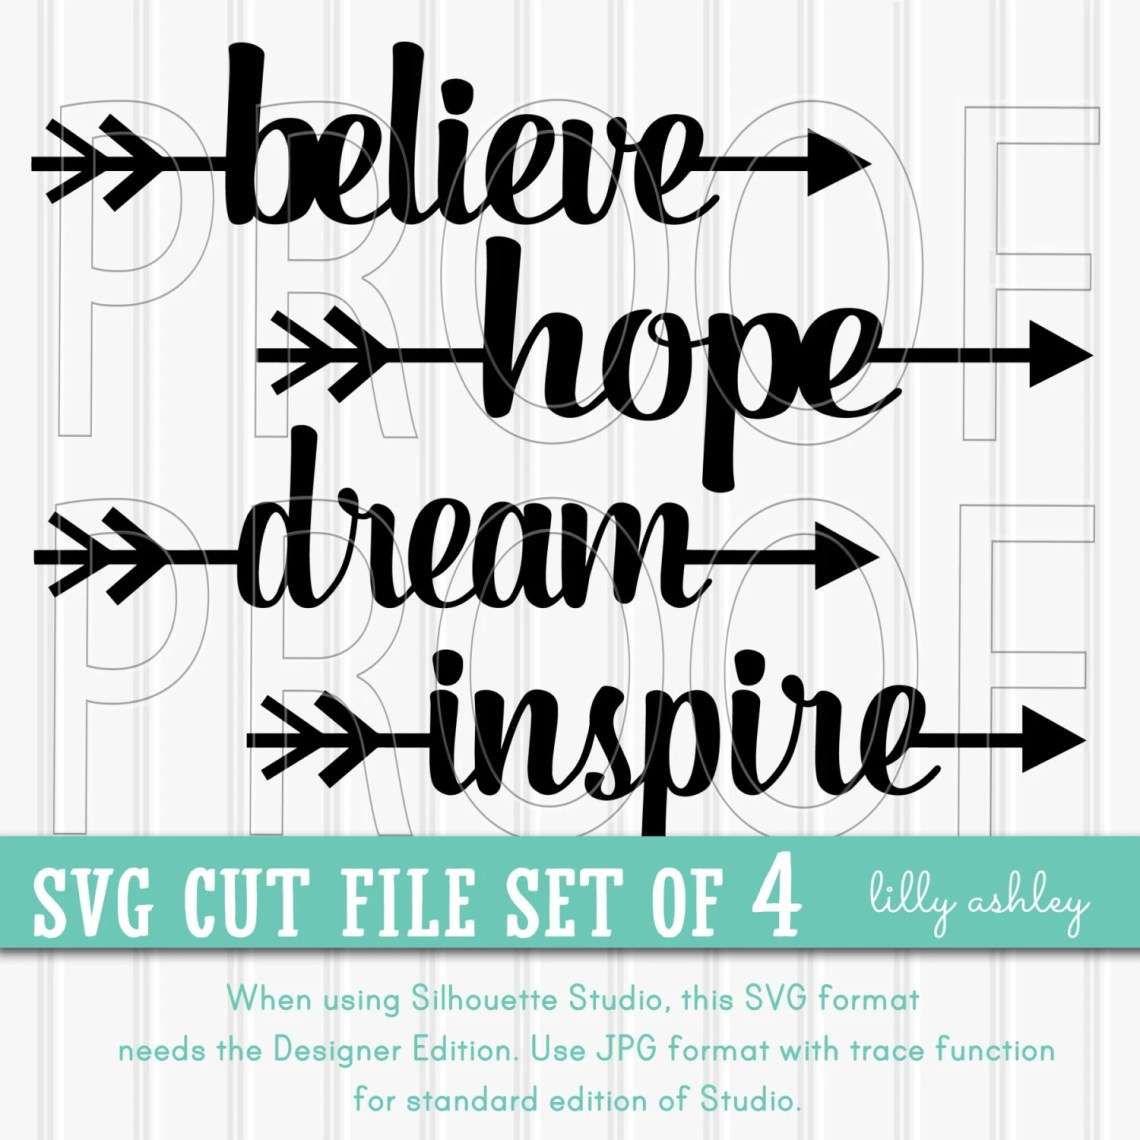 Download SVG Files set of 4 cut filesCommercial use ok Includes PNG